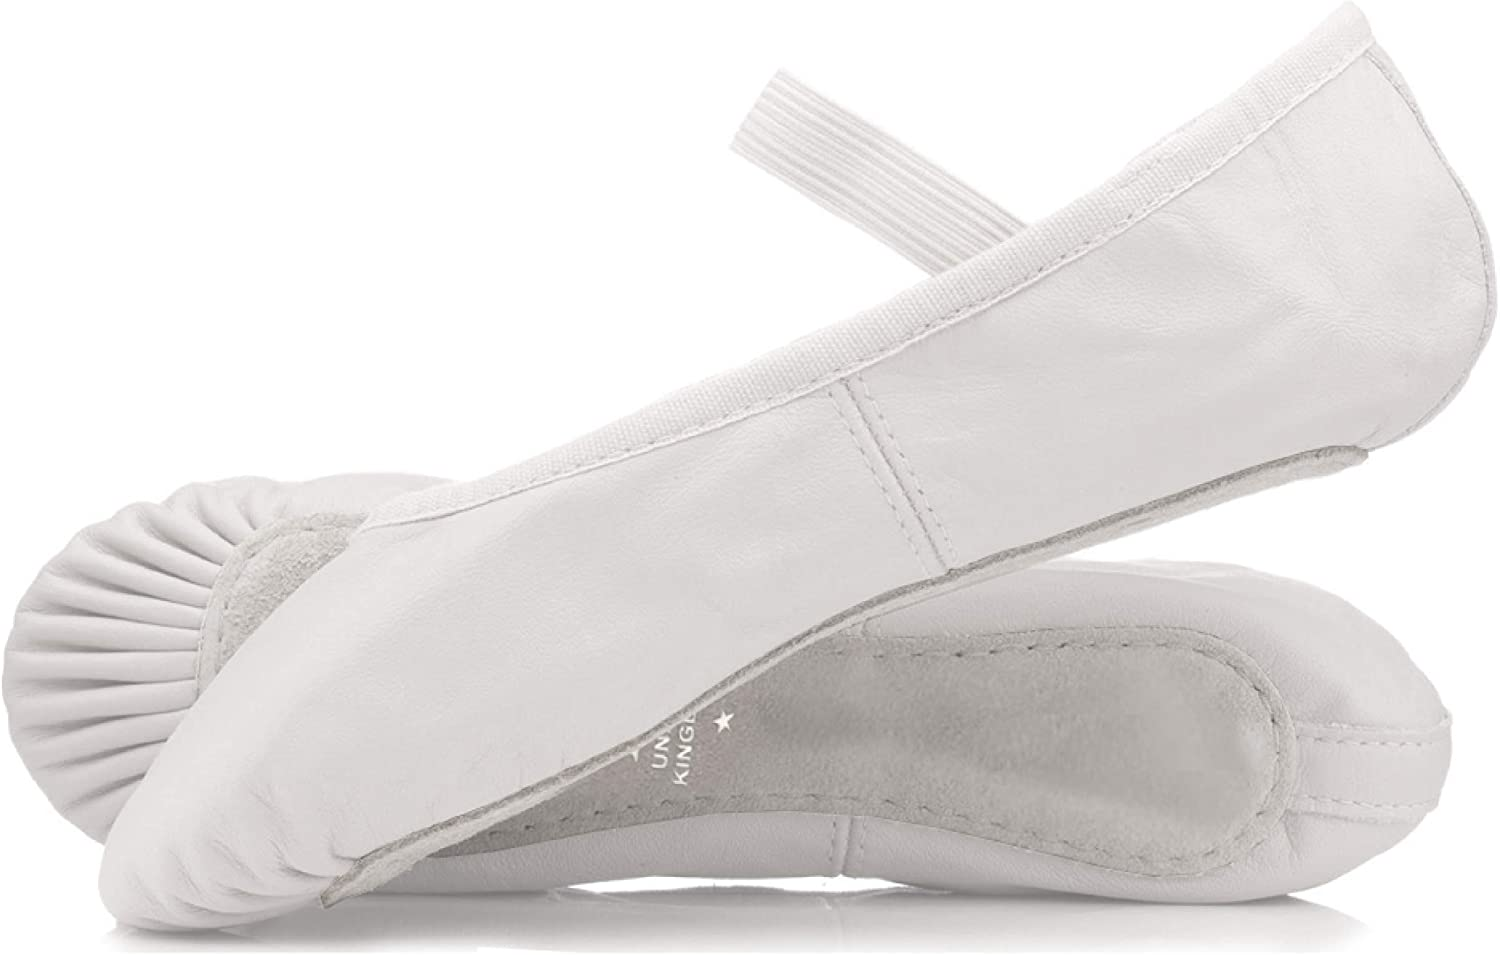 Roch Valley Ophelia Leather Ballet Shoes Attached elastic Black or White Pink